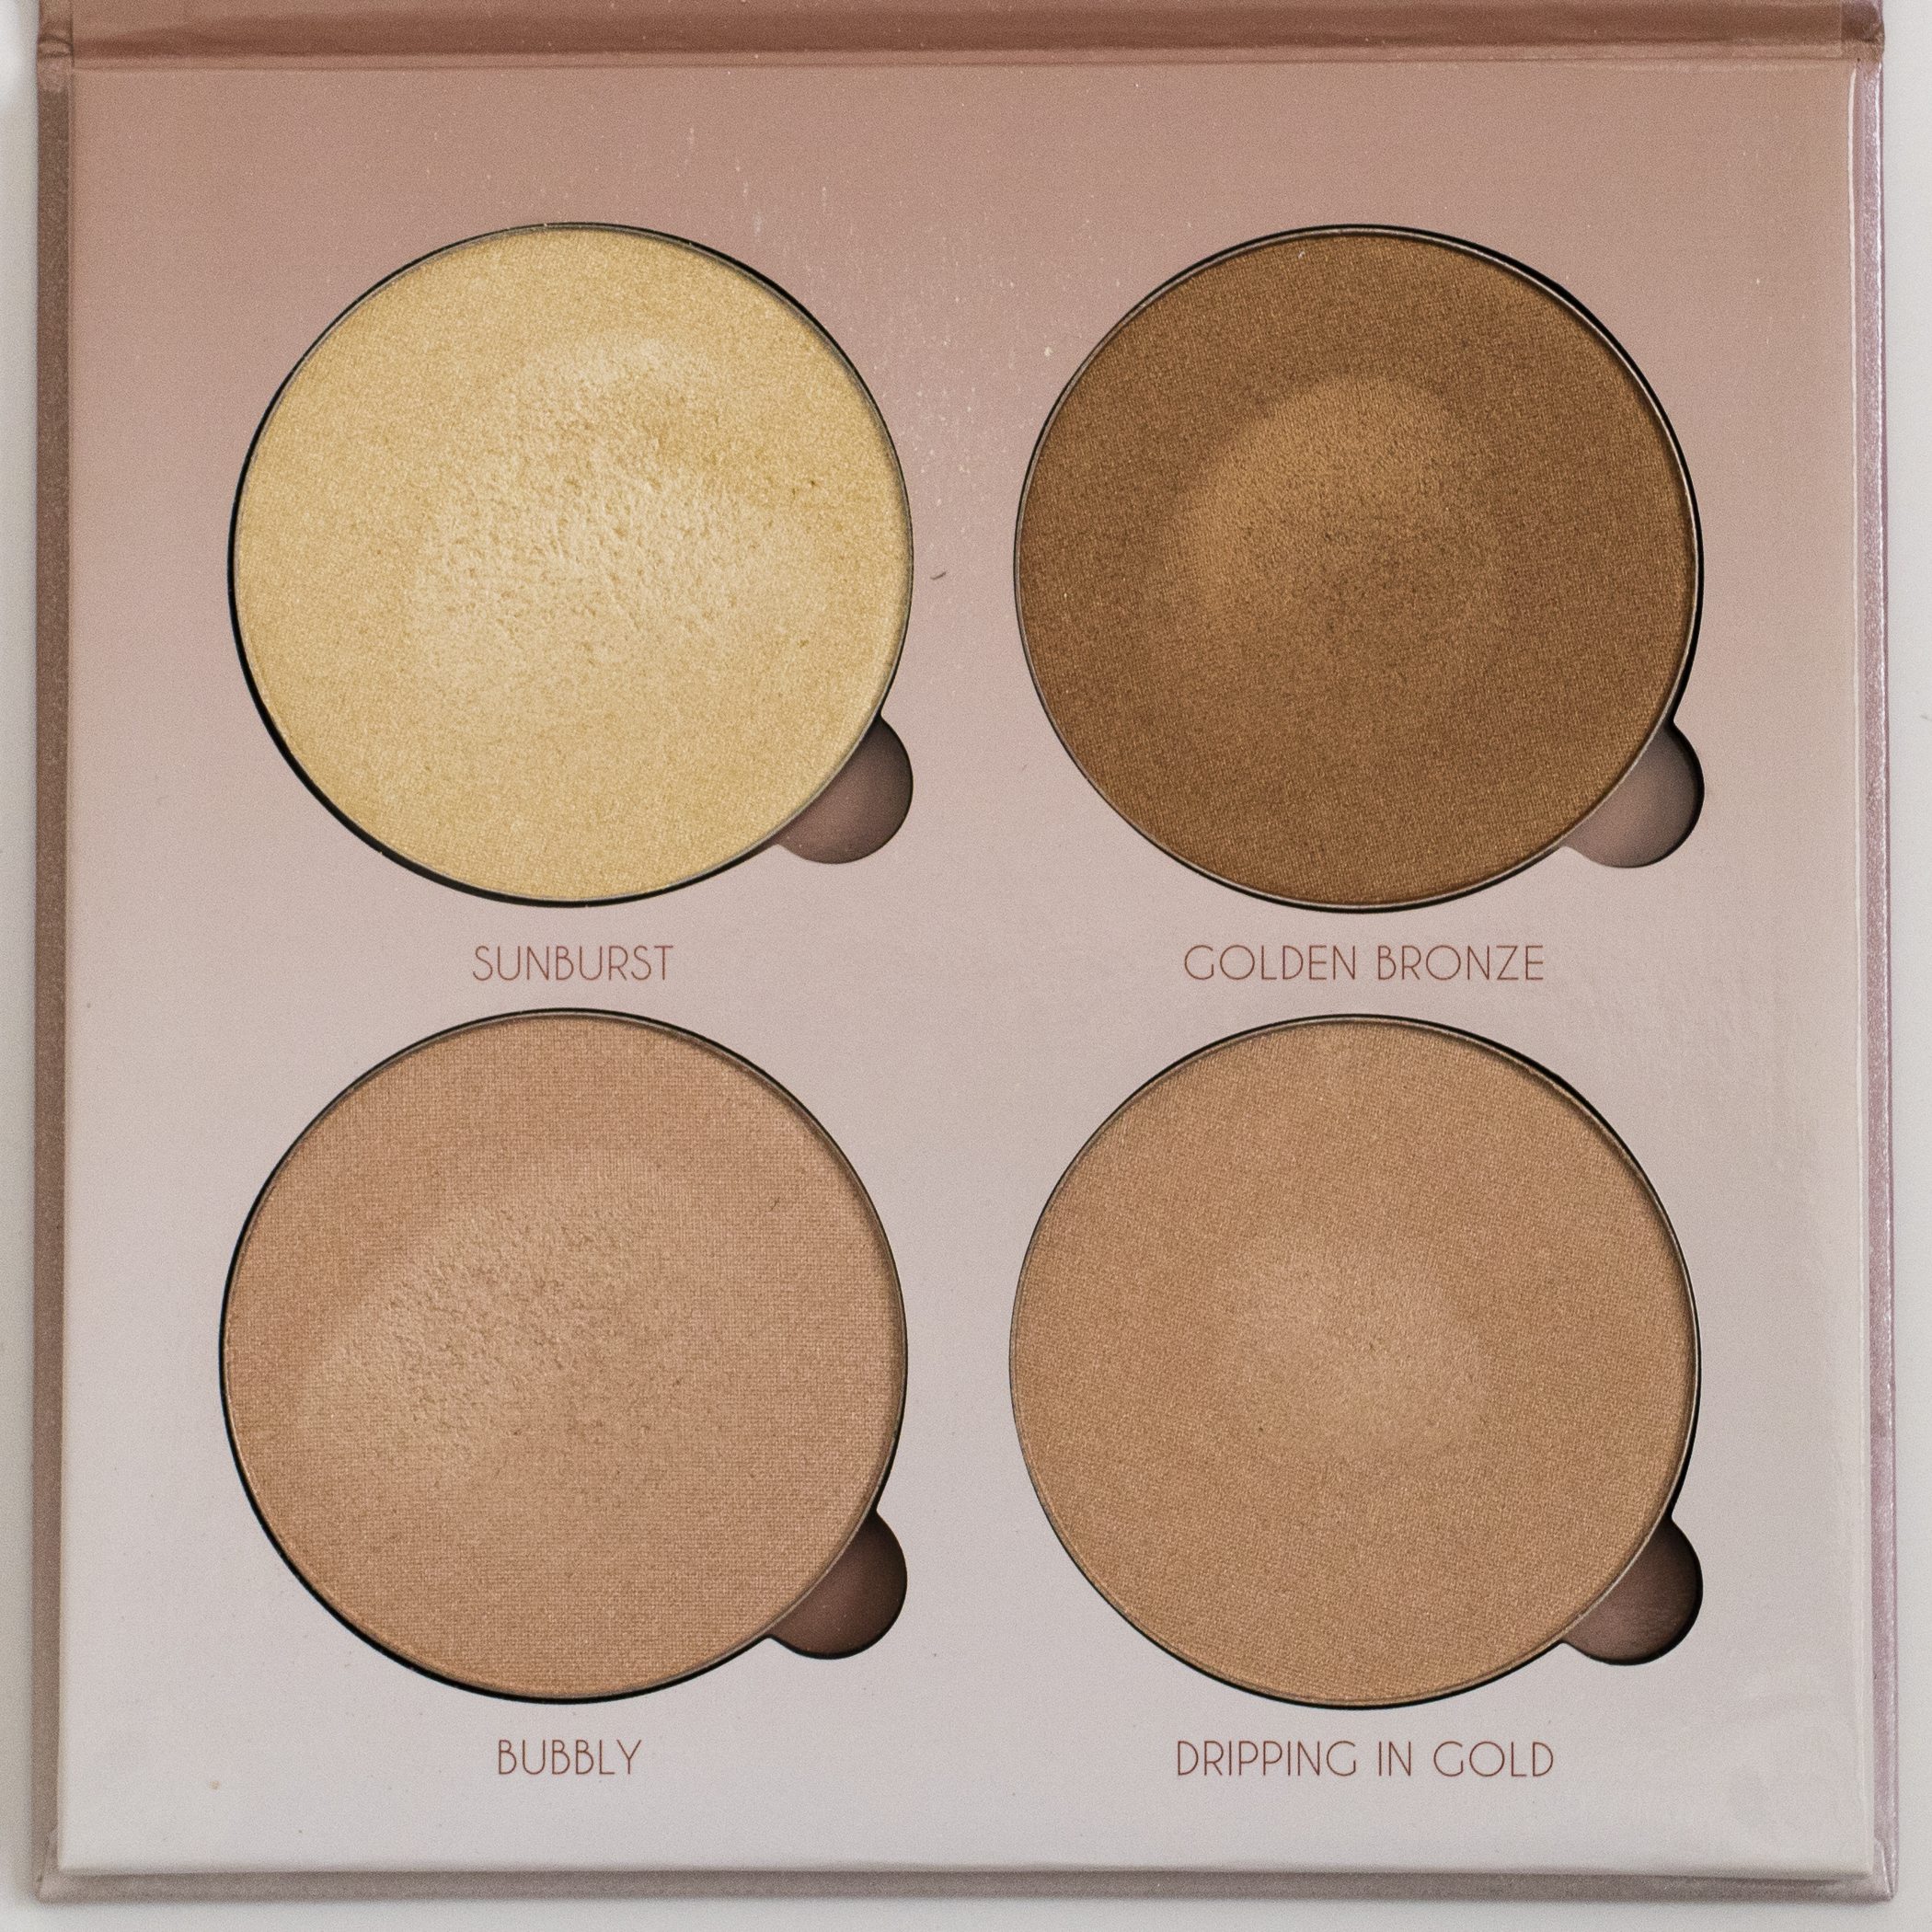 Sephora_Illuminate_BLOG_Comparisons-9.jpg